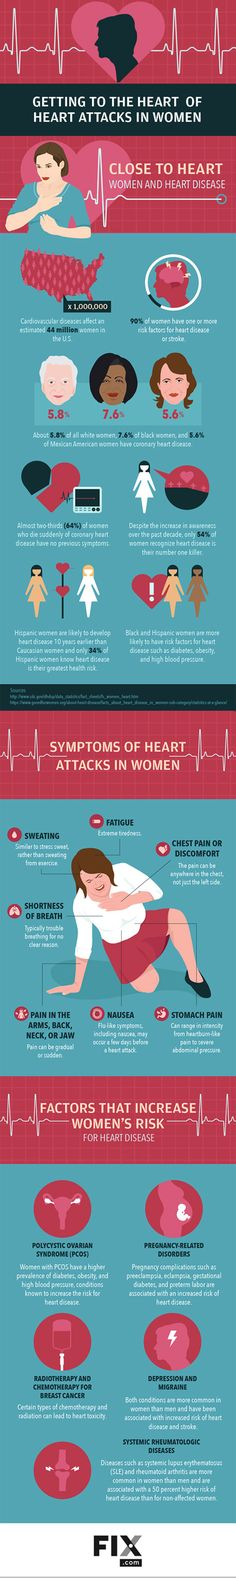 Learn all about the signs, symptoms, and specific risk factors women face with cardiovascular disease. # heart attack symptoms in women cardiovascular disease Getting to the Heart of Heart Attacks in Women Heart Symptoms, Heart Attack Symptoms, Signs And Symptoms, Disease Symptoms, Autoimmune Disease, Cardiovascular Disease, Good Fats, Heart Health, Health Advice